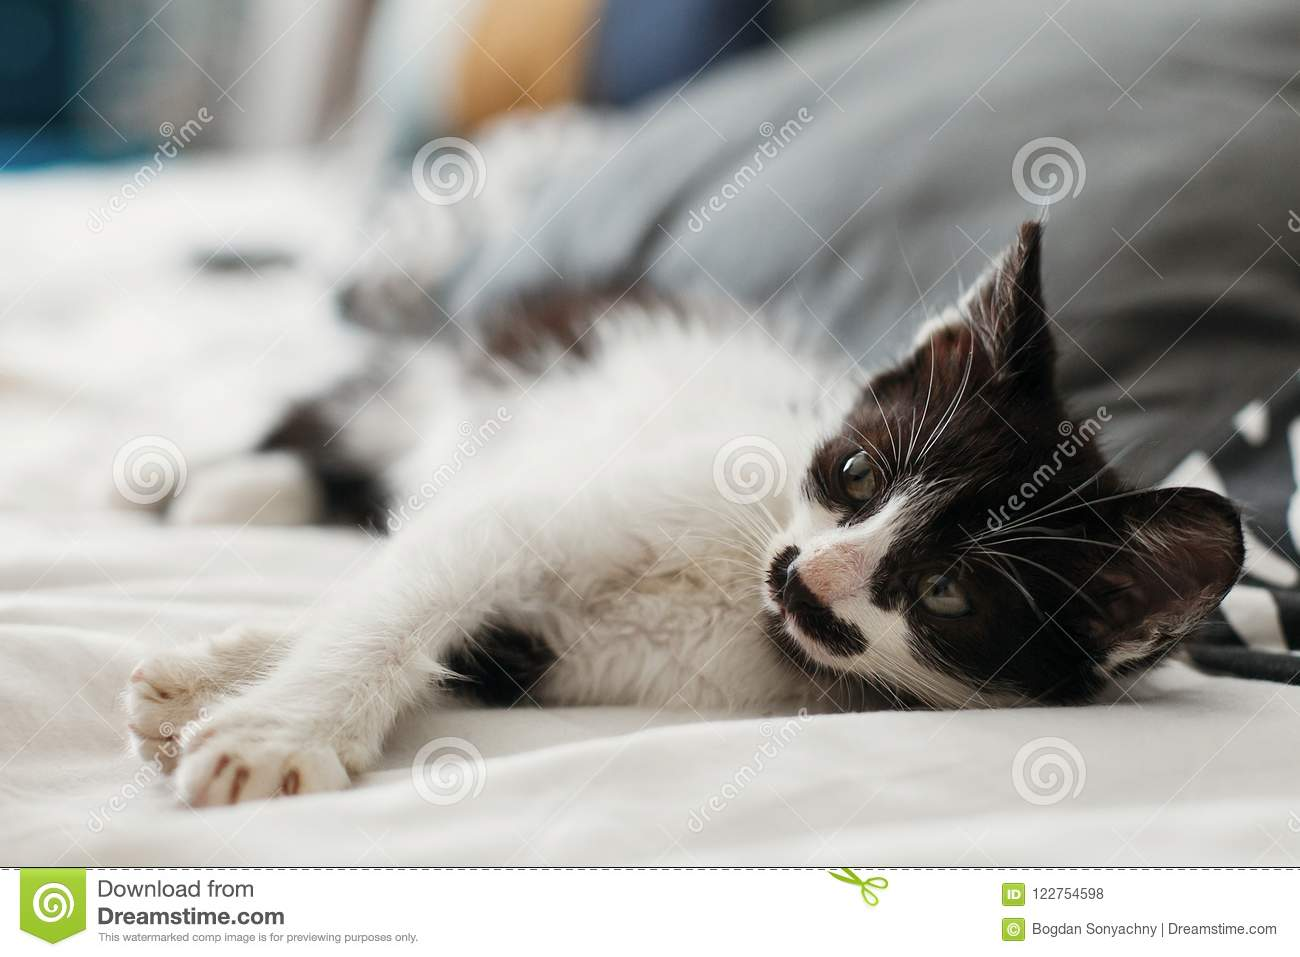 cute little kitty with amazing eyes sleeping on pillows in morning light. adorable black and white kitten with funny emotions